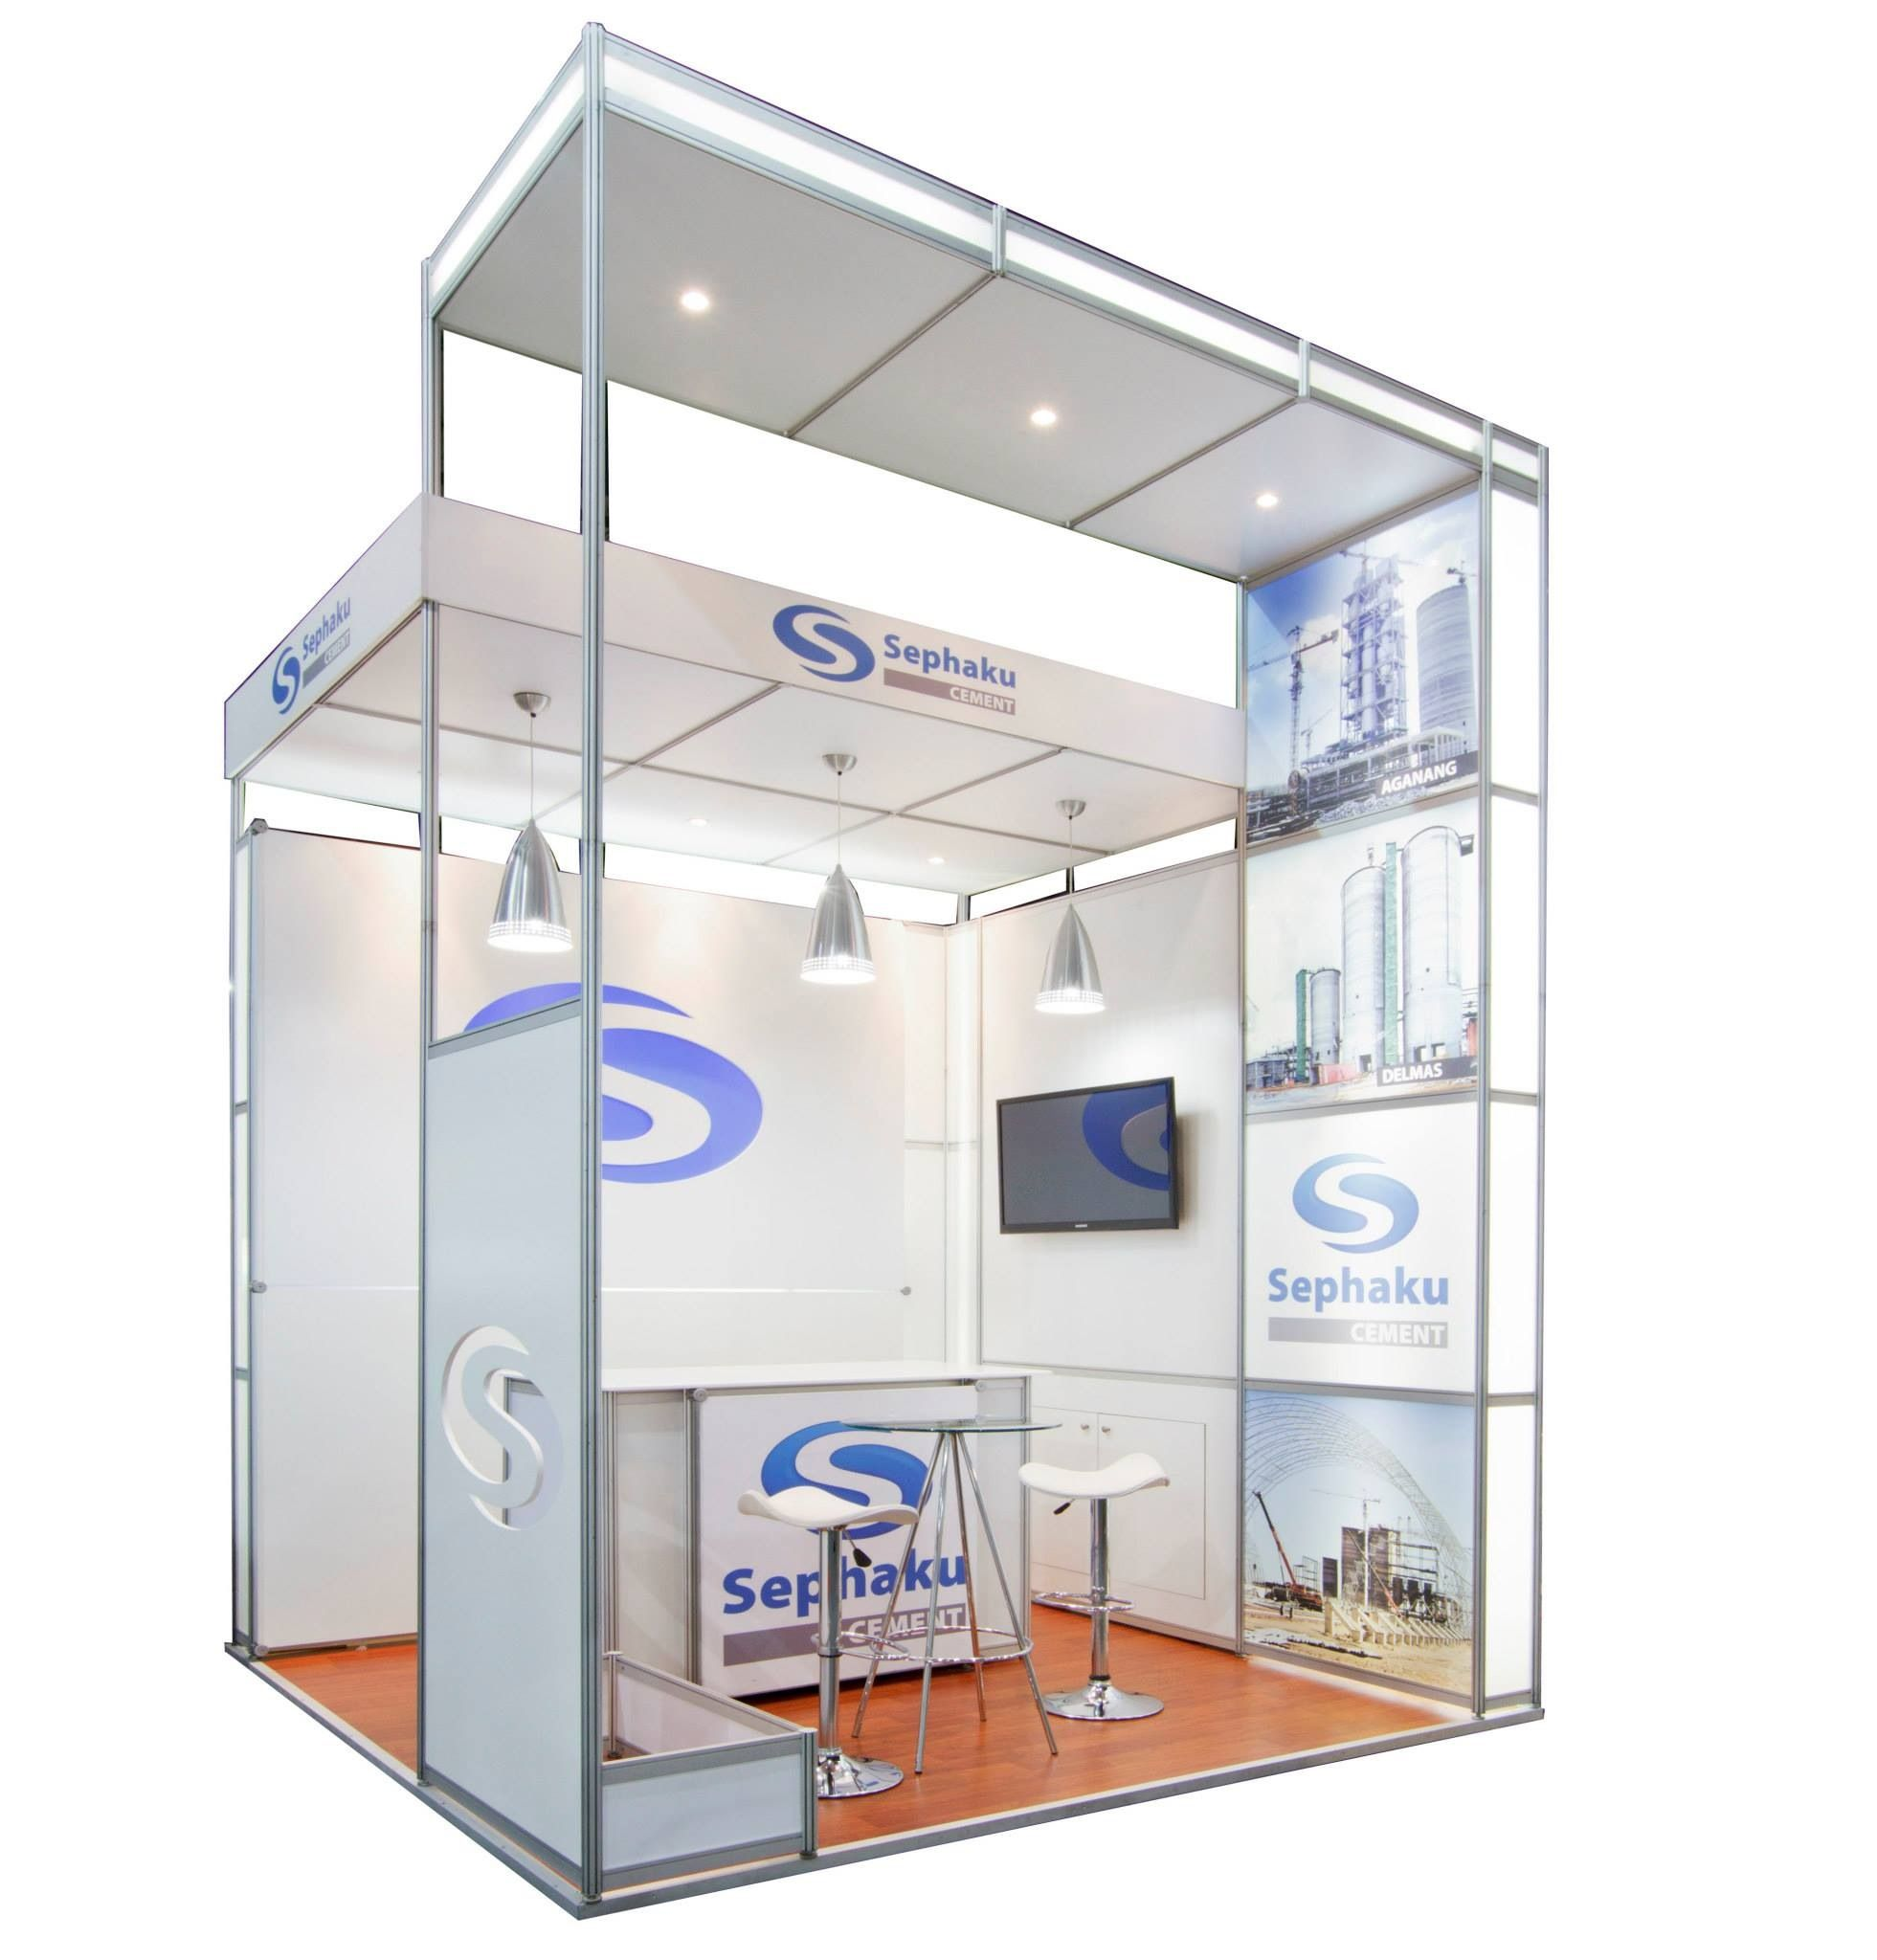 Exhibition Booth En Francais : Pin by john kullmann on exhibition stands pinterest